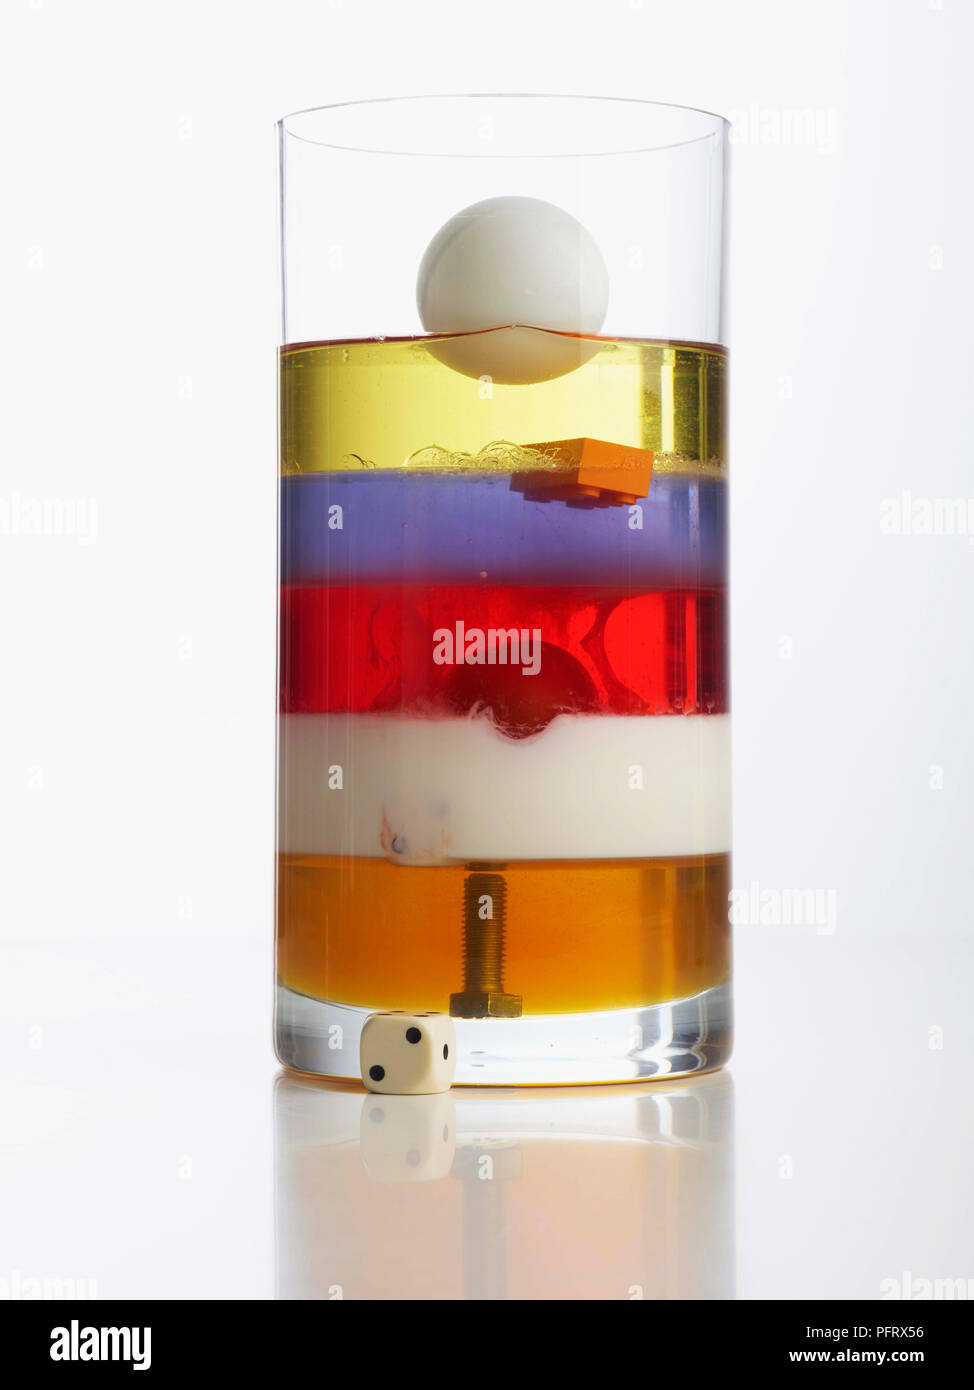 Density tower showing vase with 5 layers: honey, milk, washing-up liquid, water, vegetable oil. Bolt, cherry tomato, and table tennis ball are also in the vase. - Stock Image